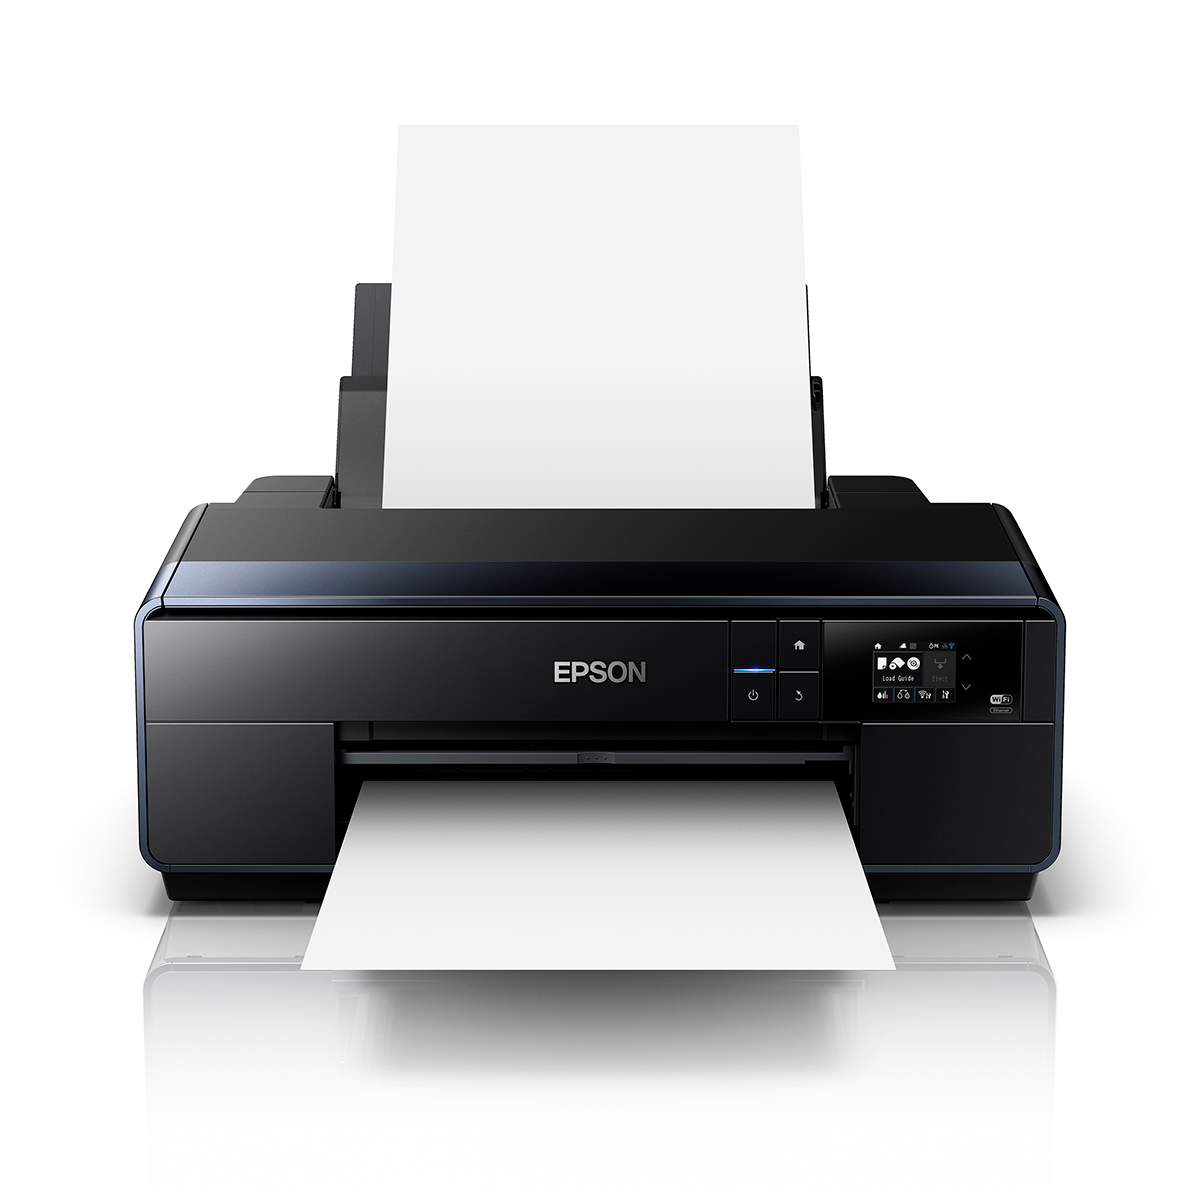 Epson SureColour SC-P600 A3 Pro Photo Colour Inkjet Printer